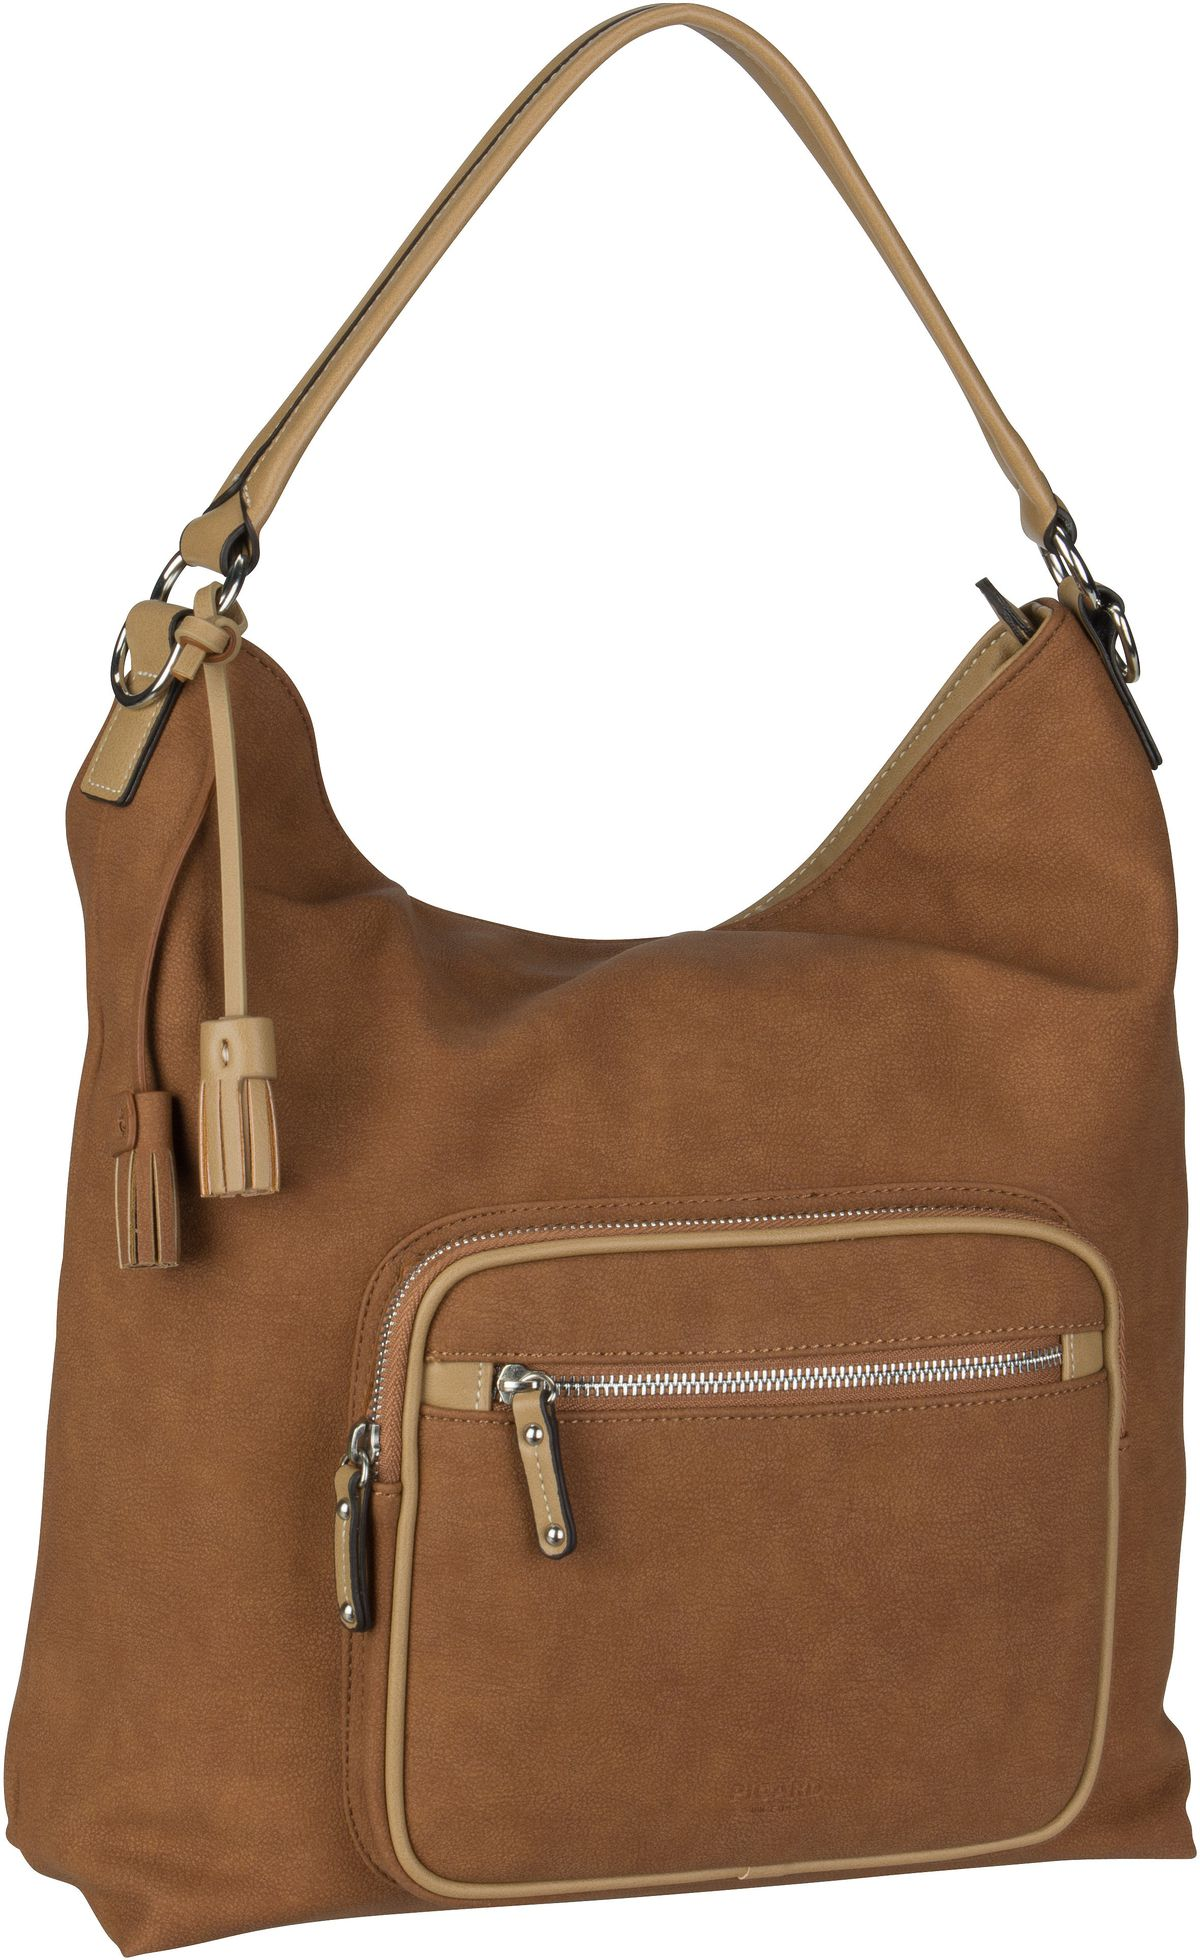 Handtasche Holly 2855 Cognac/Kombi